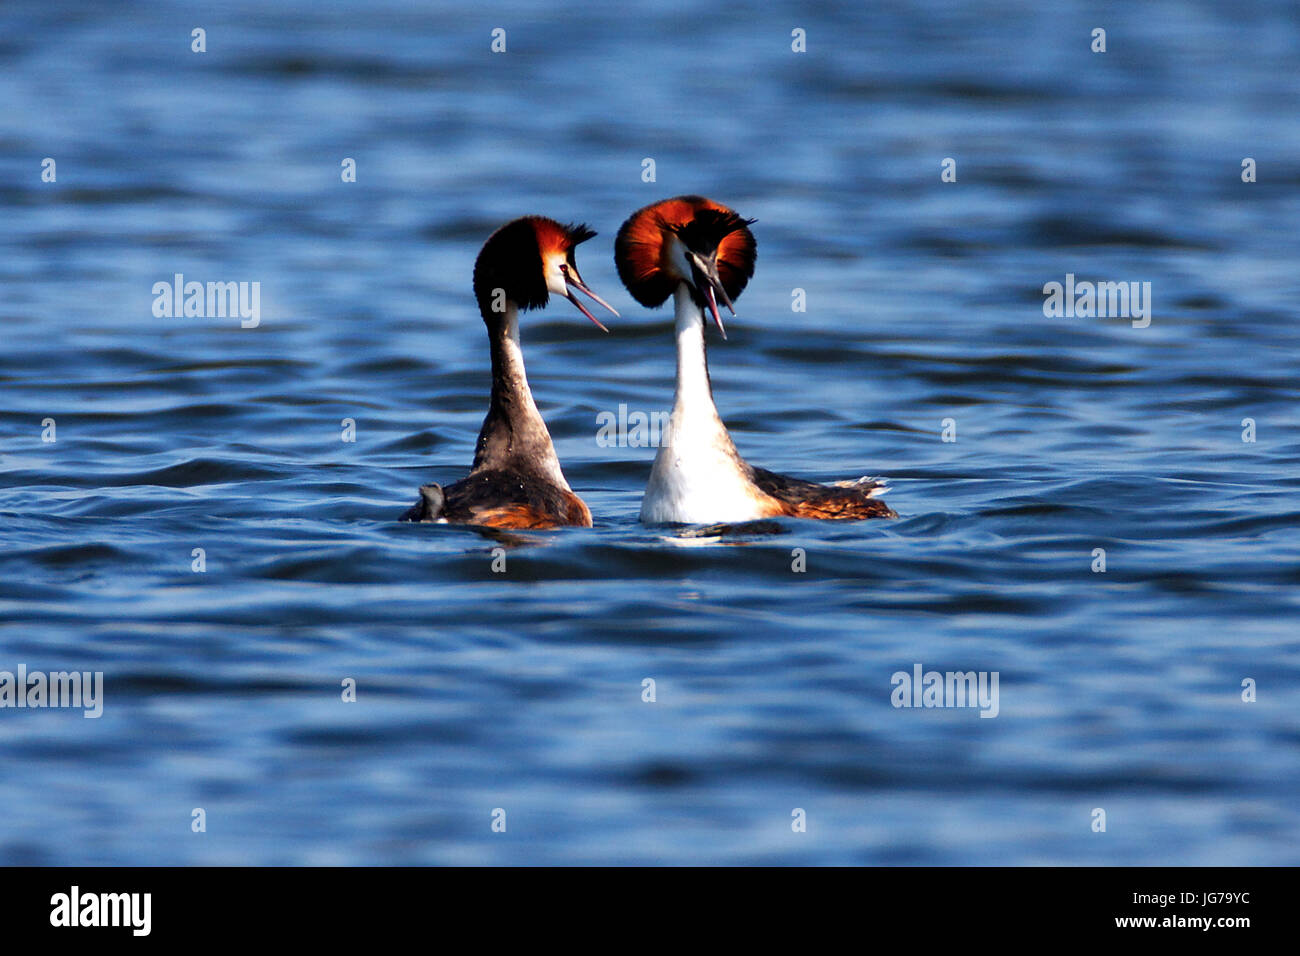 The great crested grebe on Crna Mlaka fishpond - Stock Image